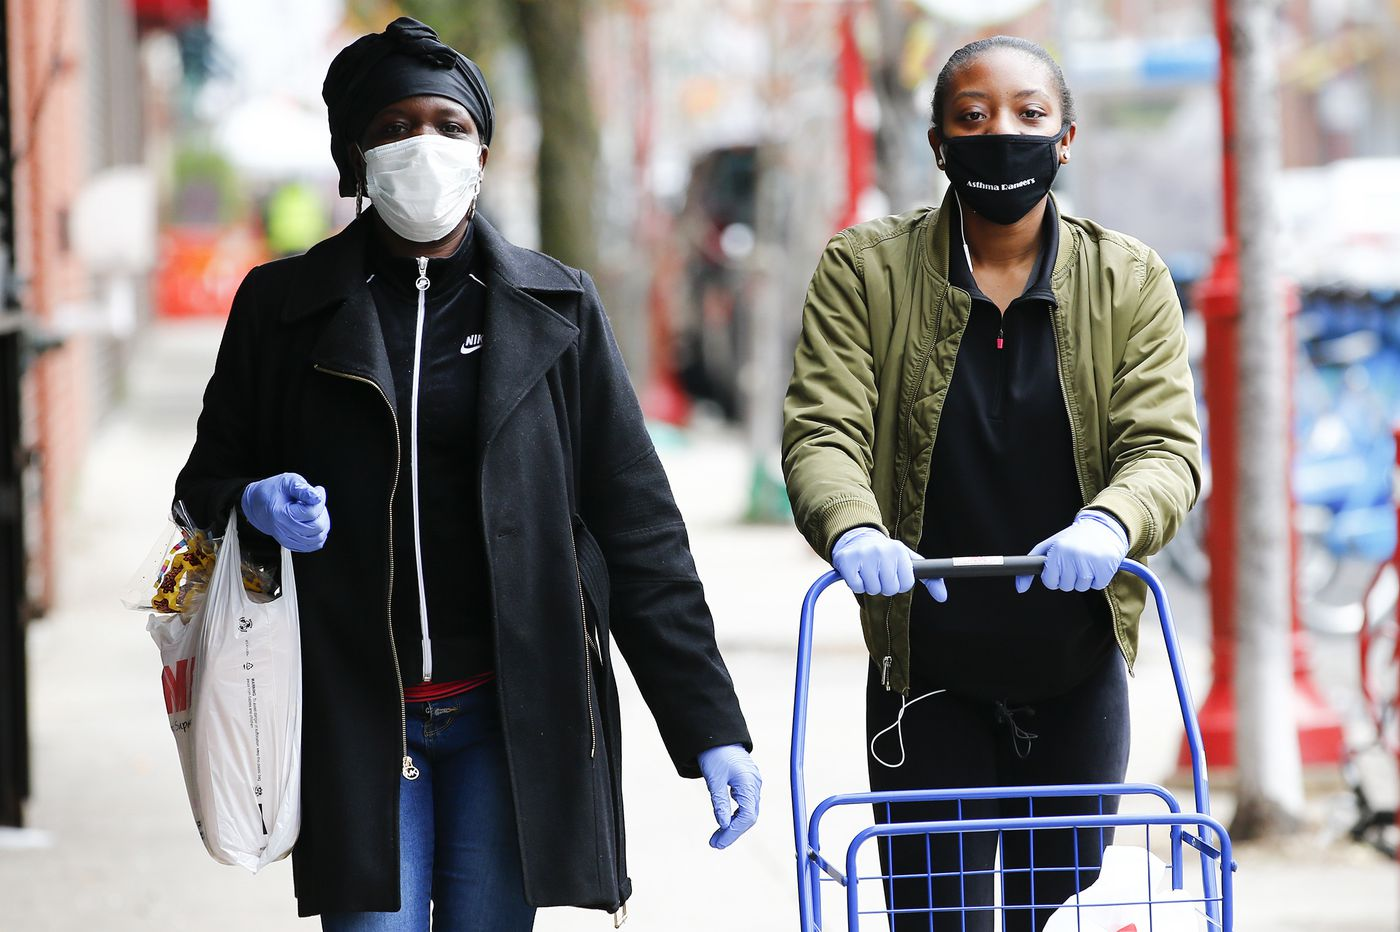 CDC considers advising the public to wear face coverings